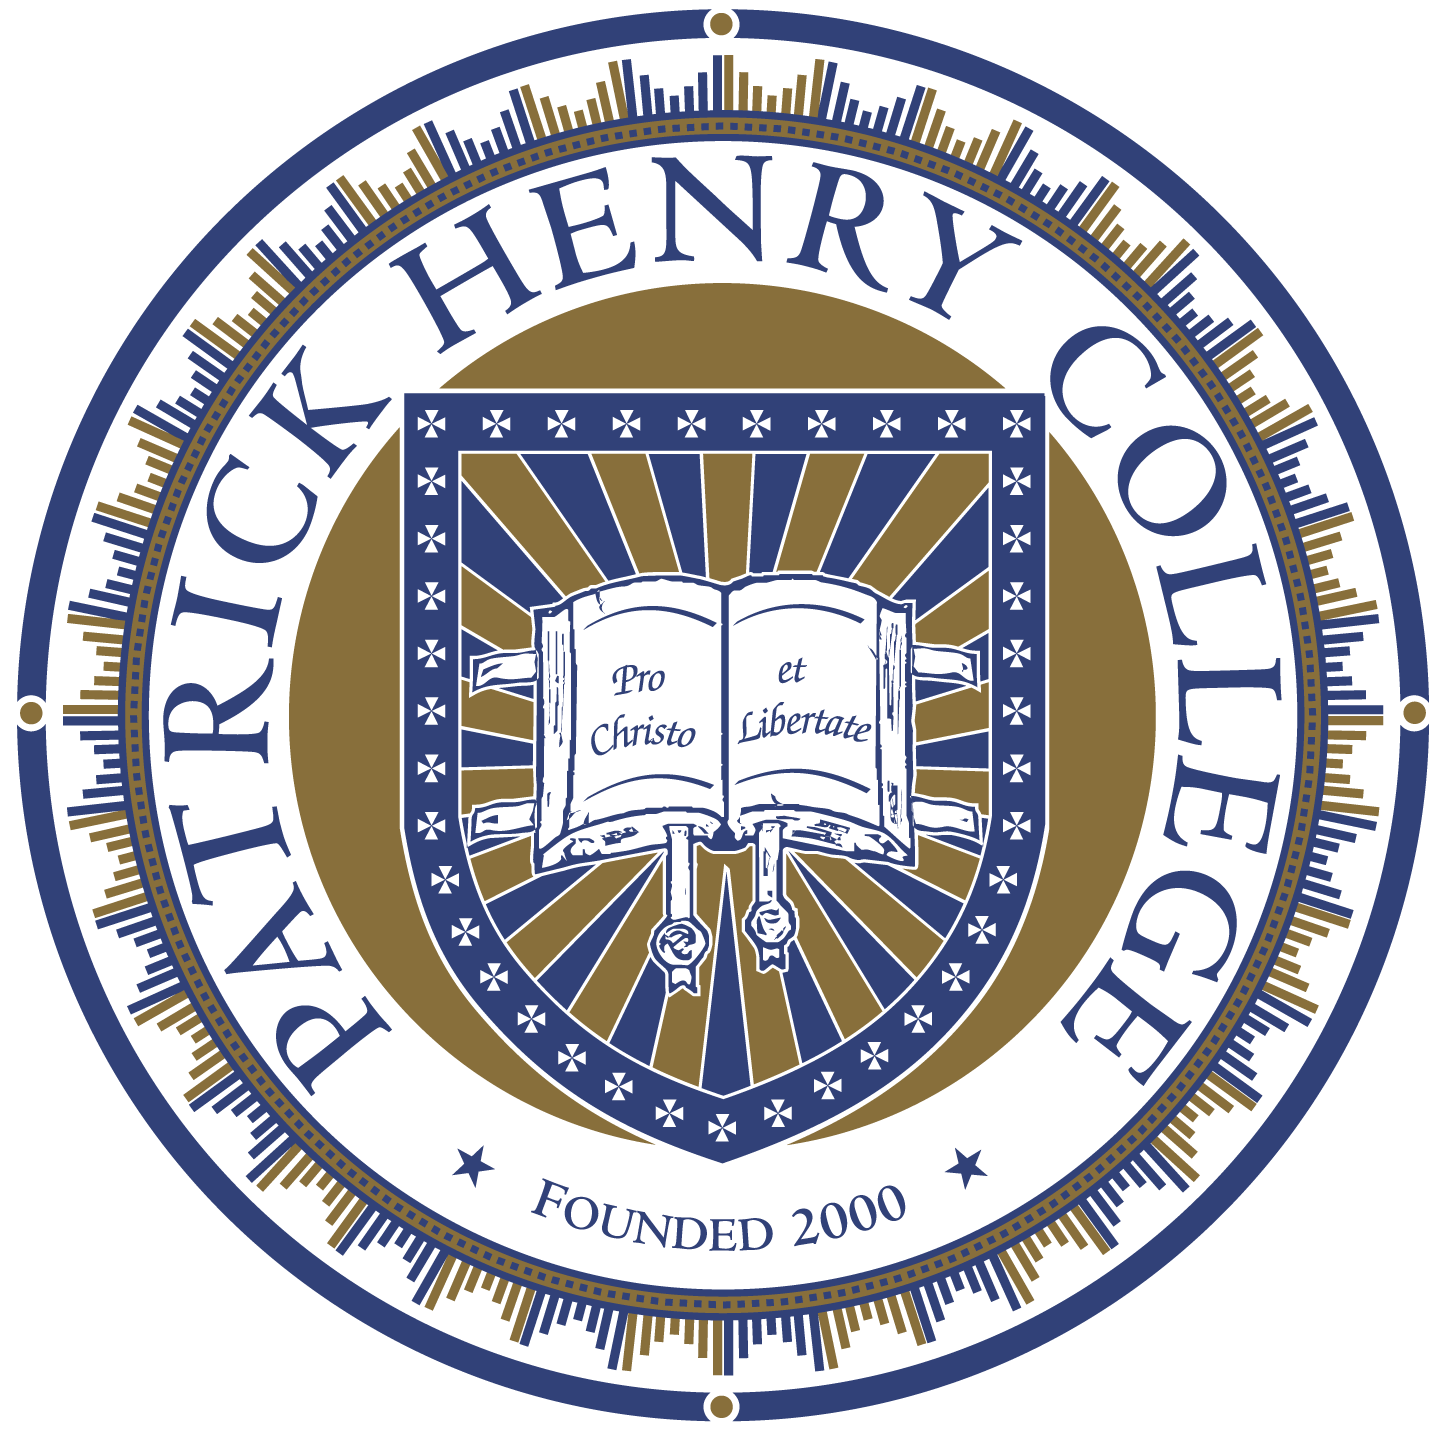 Patrick Henry College is Awarded Candidacy for Accreditation by the Southern Association of Colleges & Schools (SACS)